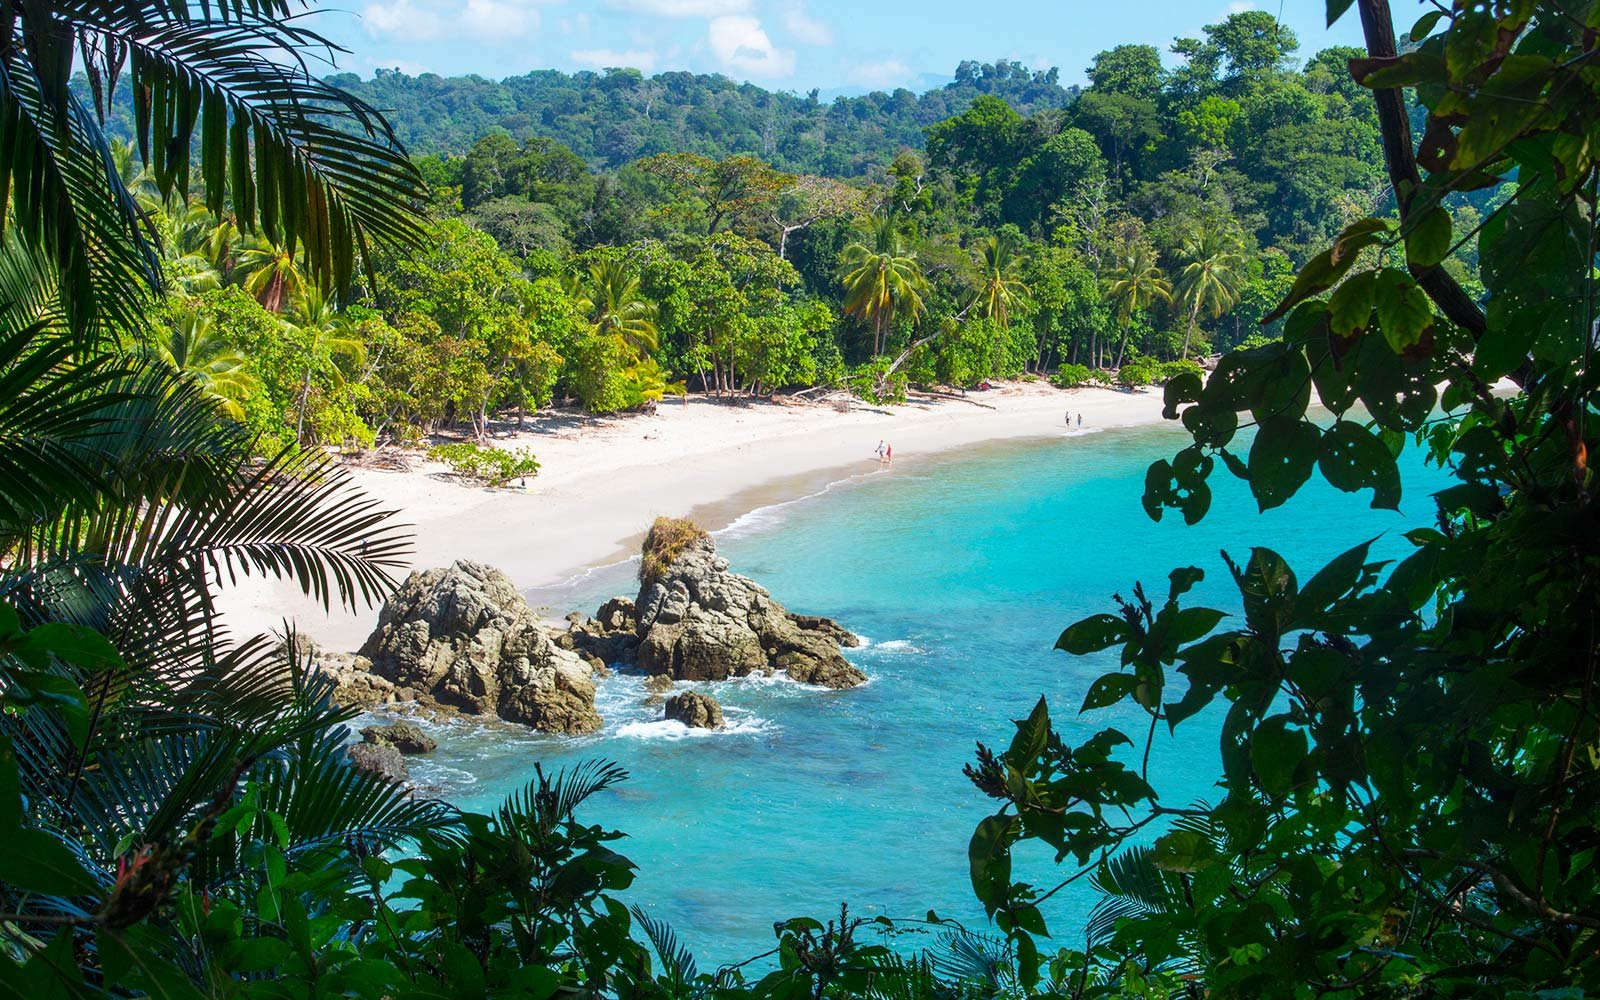 Video Wallpaper Hd Fall Flights To Costa Rica Are On Sale For 205 Round Trip